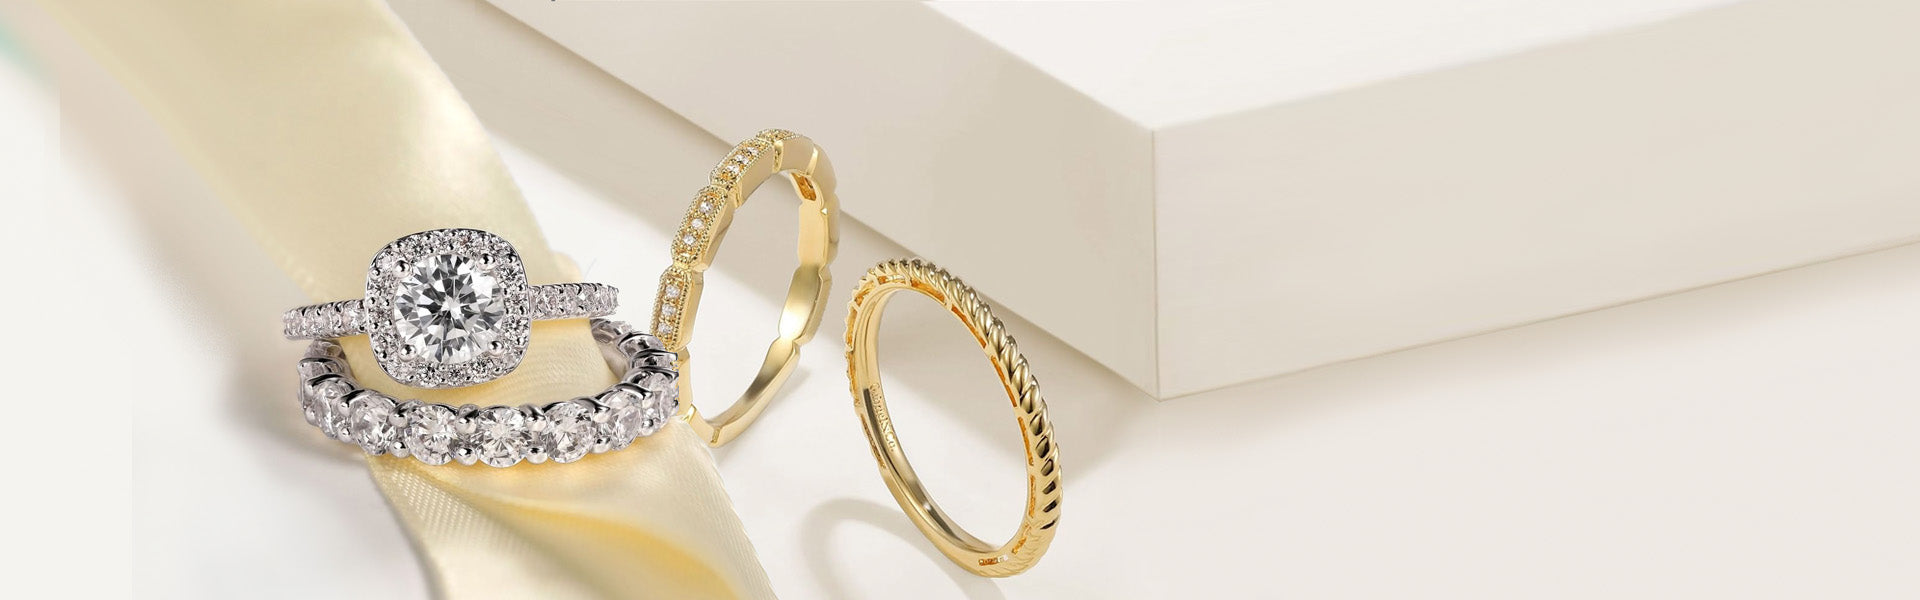 wedding jewelry rings and bands